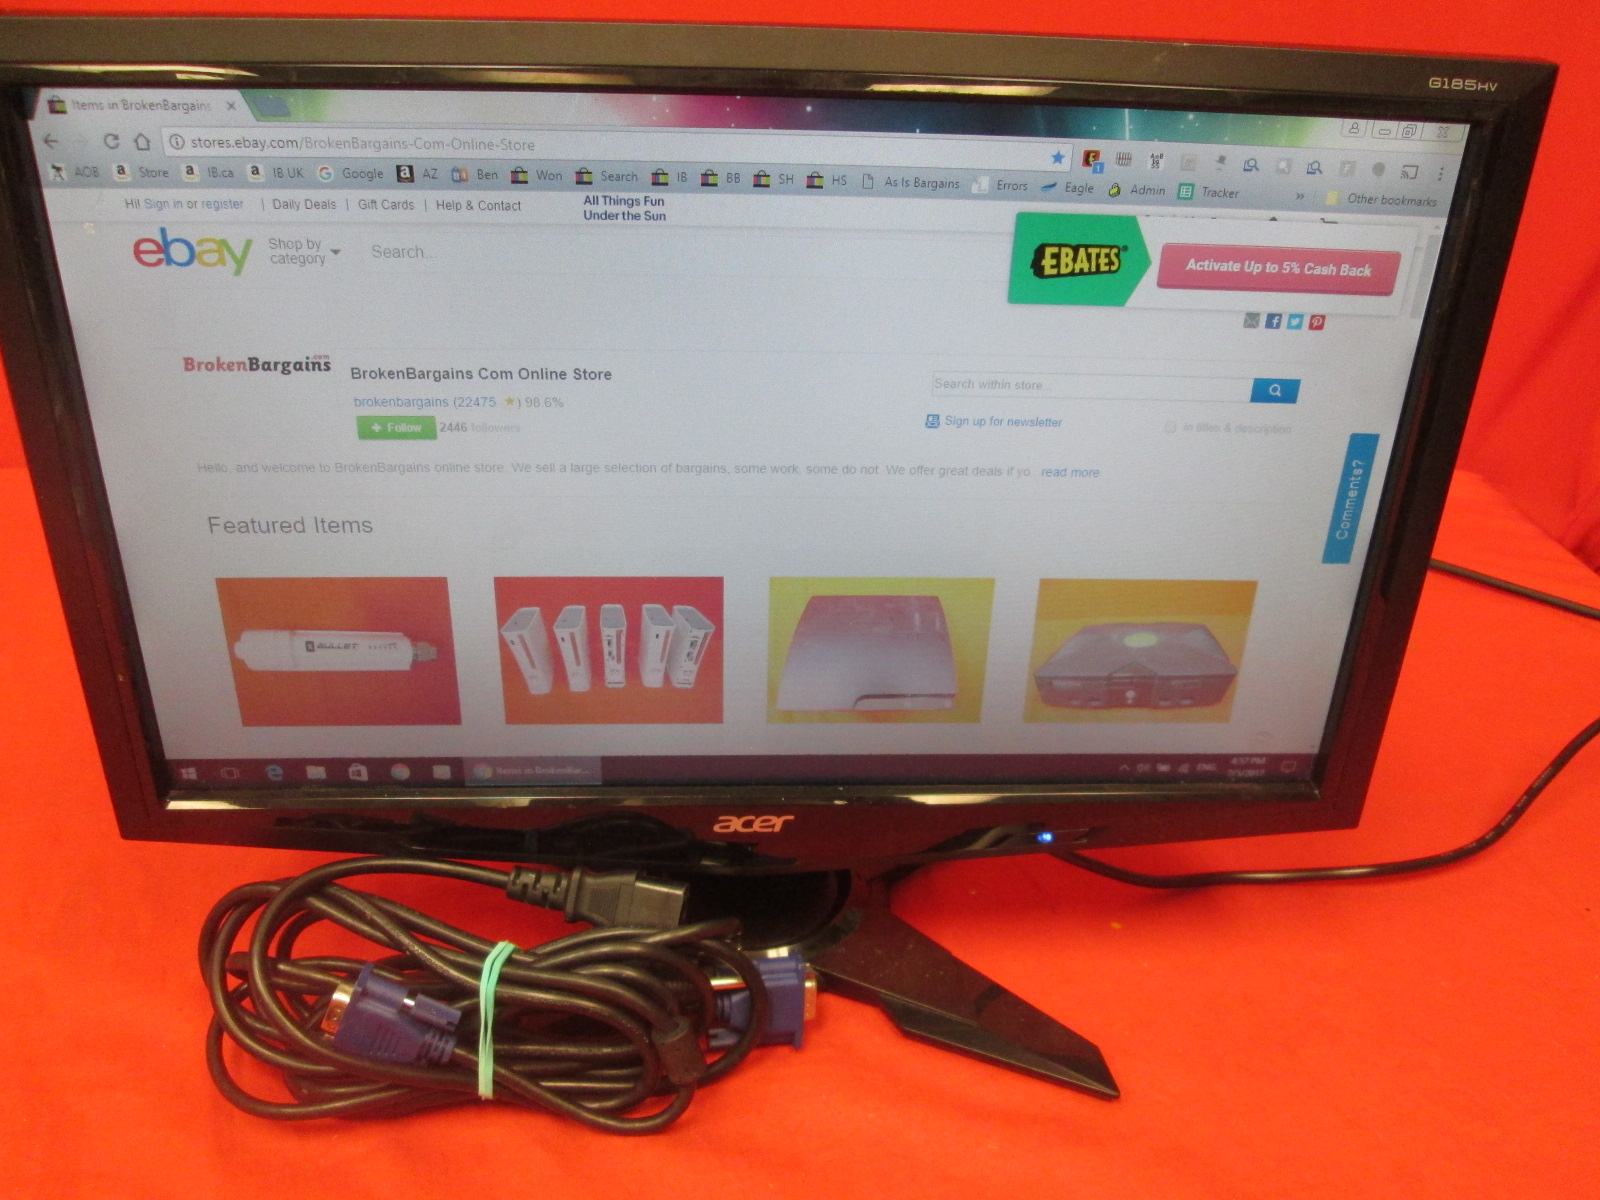 Acer G185HVB 18.5 Inch LCD Monitor 16:9 5 Ms